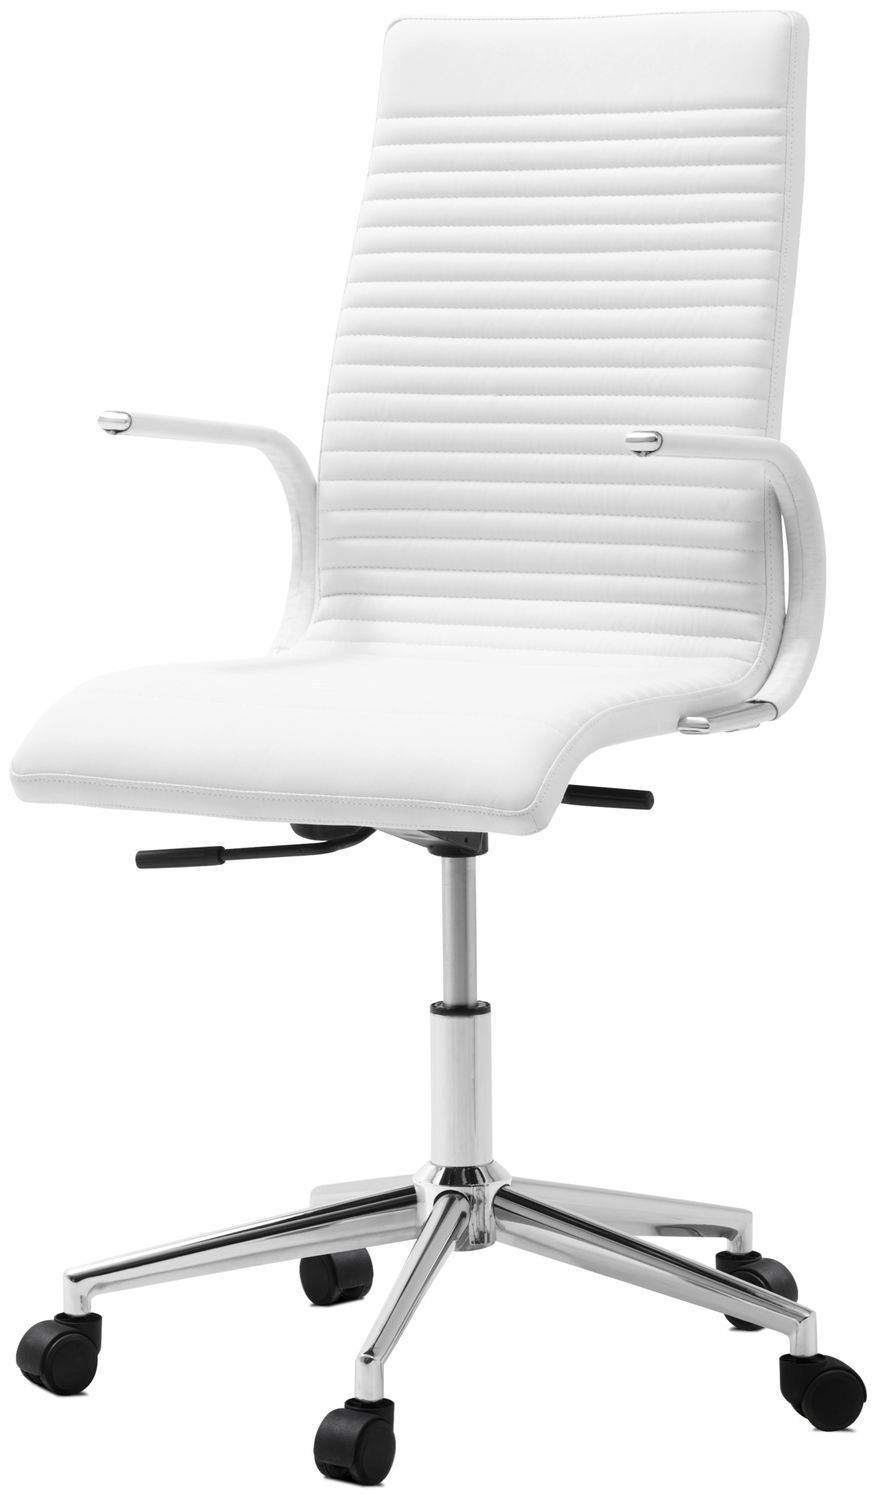 Contemporary Office Chair Upholstered With Armrests On Casters Ferrara